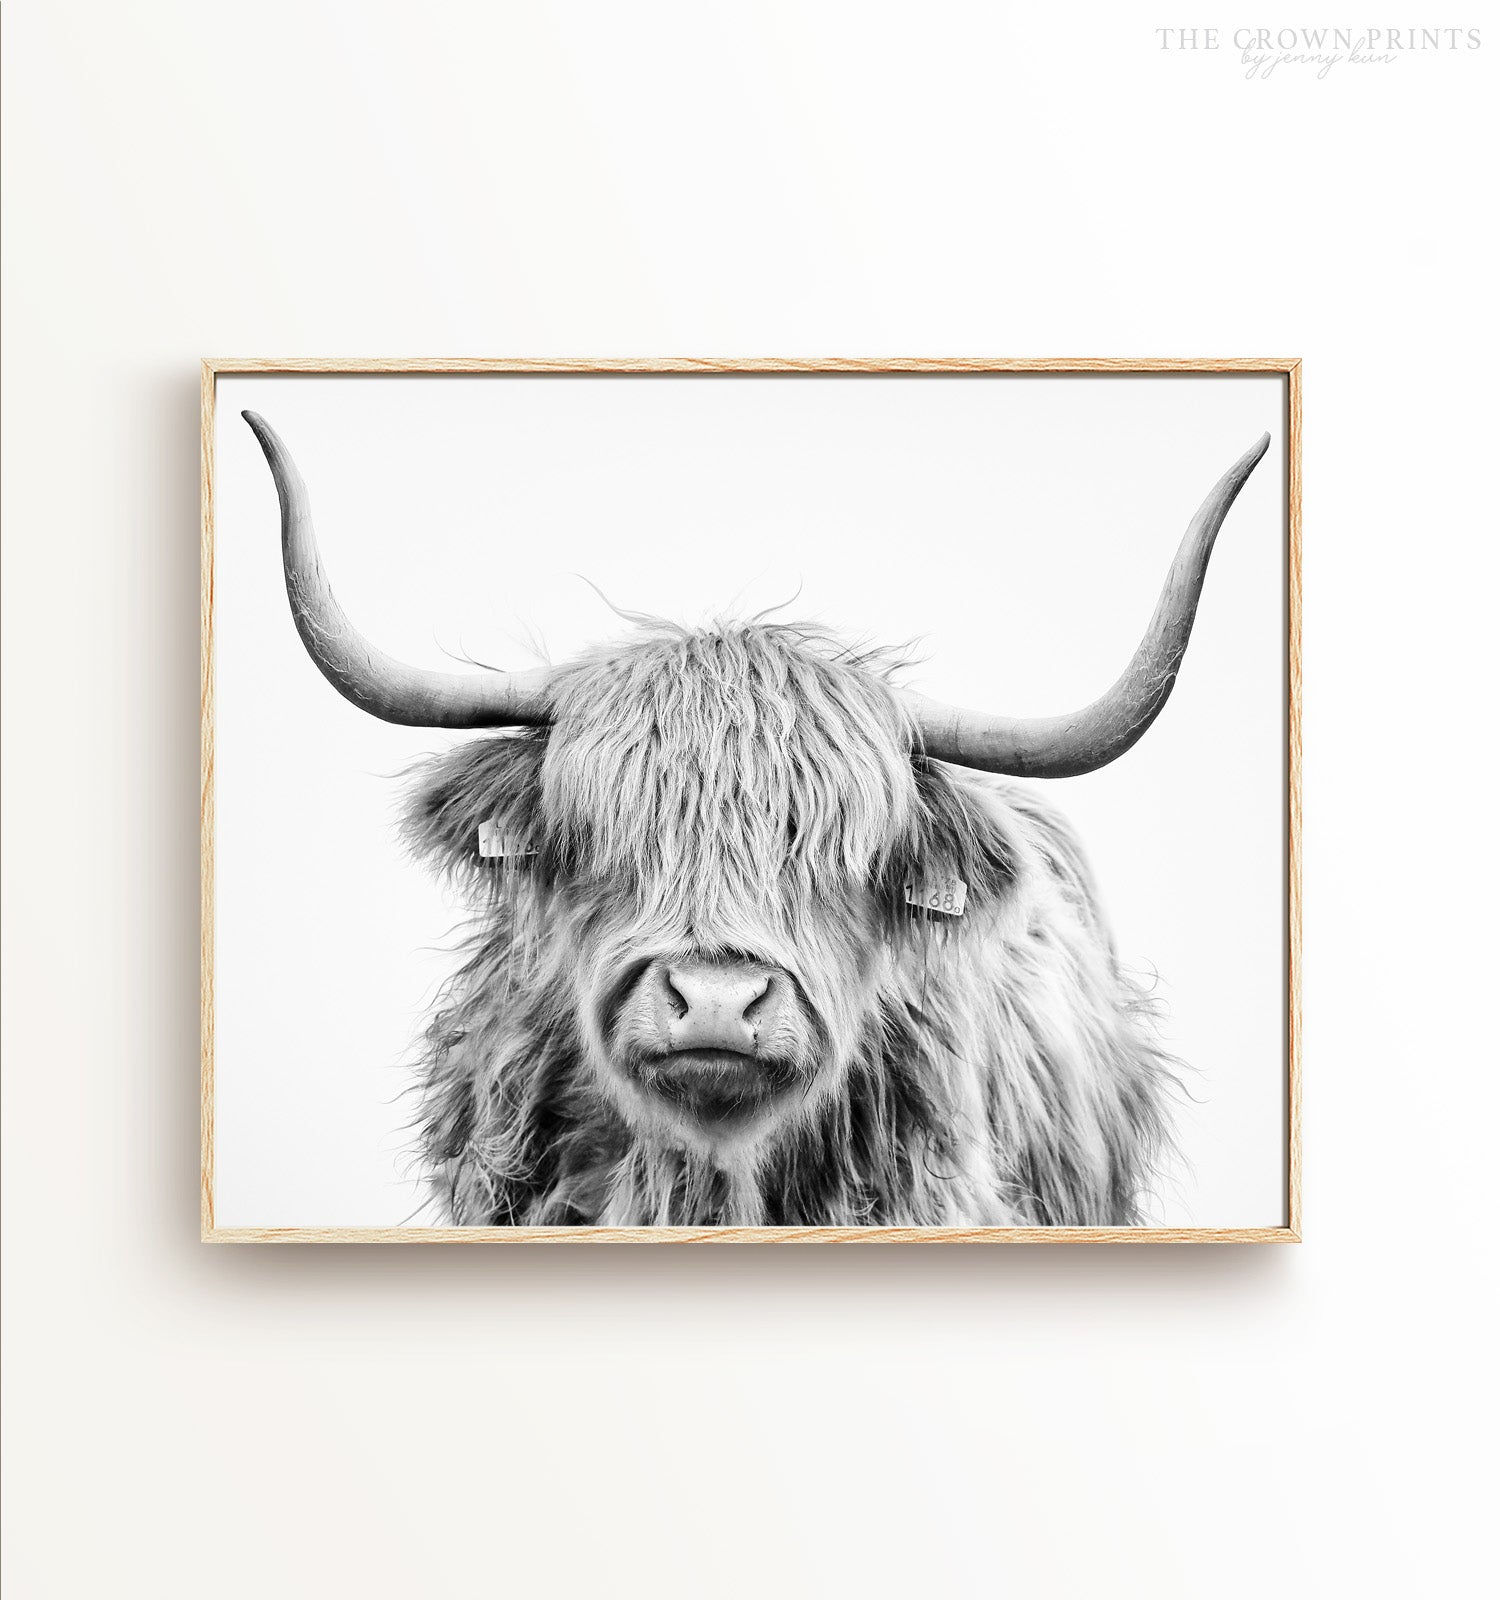 Highland Cow No. 3 Head Shot, Black and White Printable Art